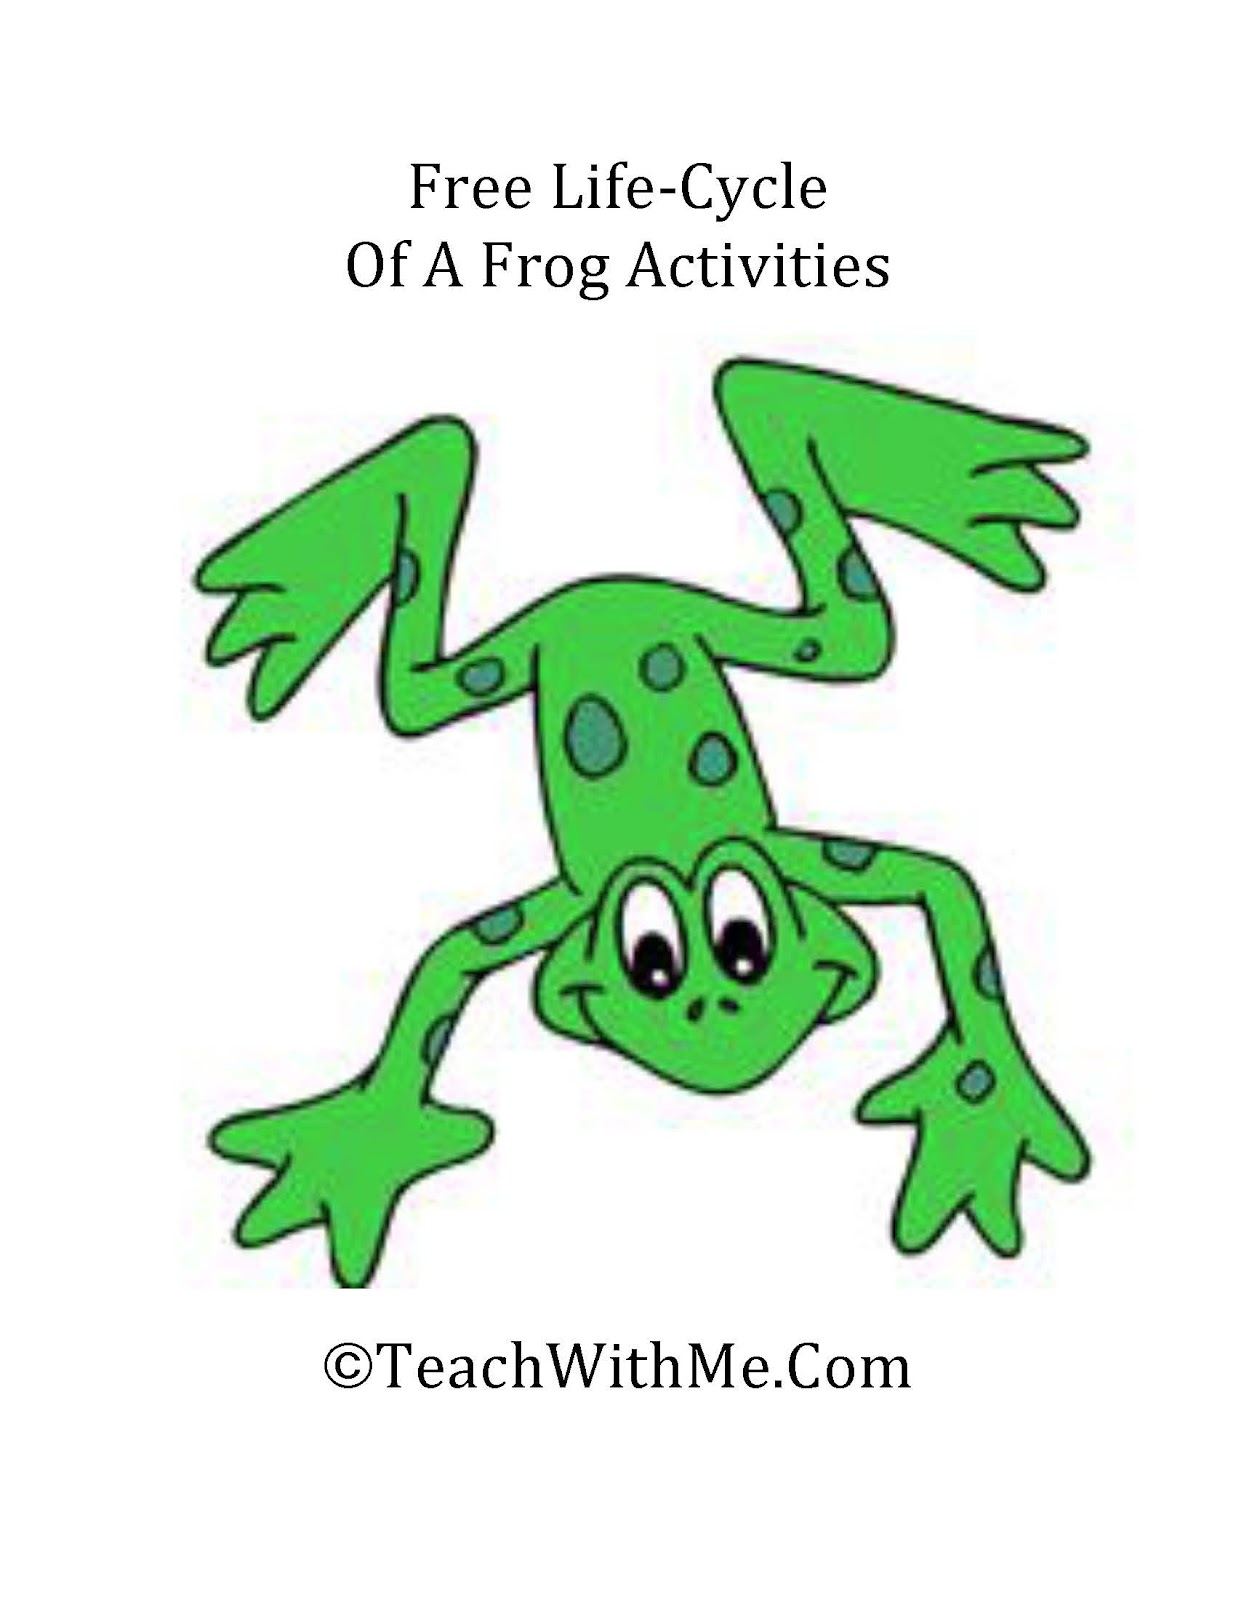 The Life Cycle Of A Frog Activities